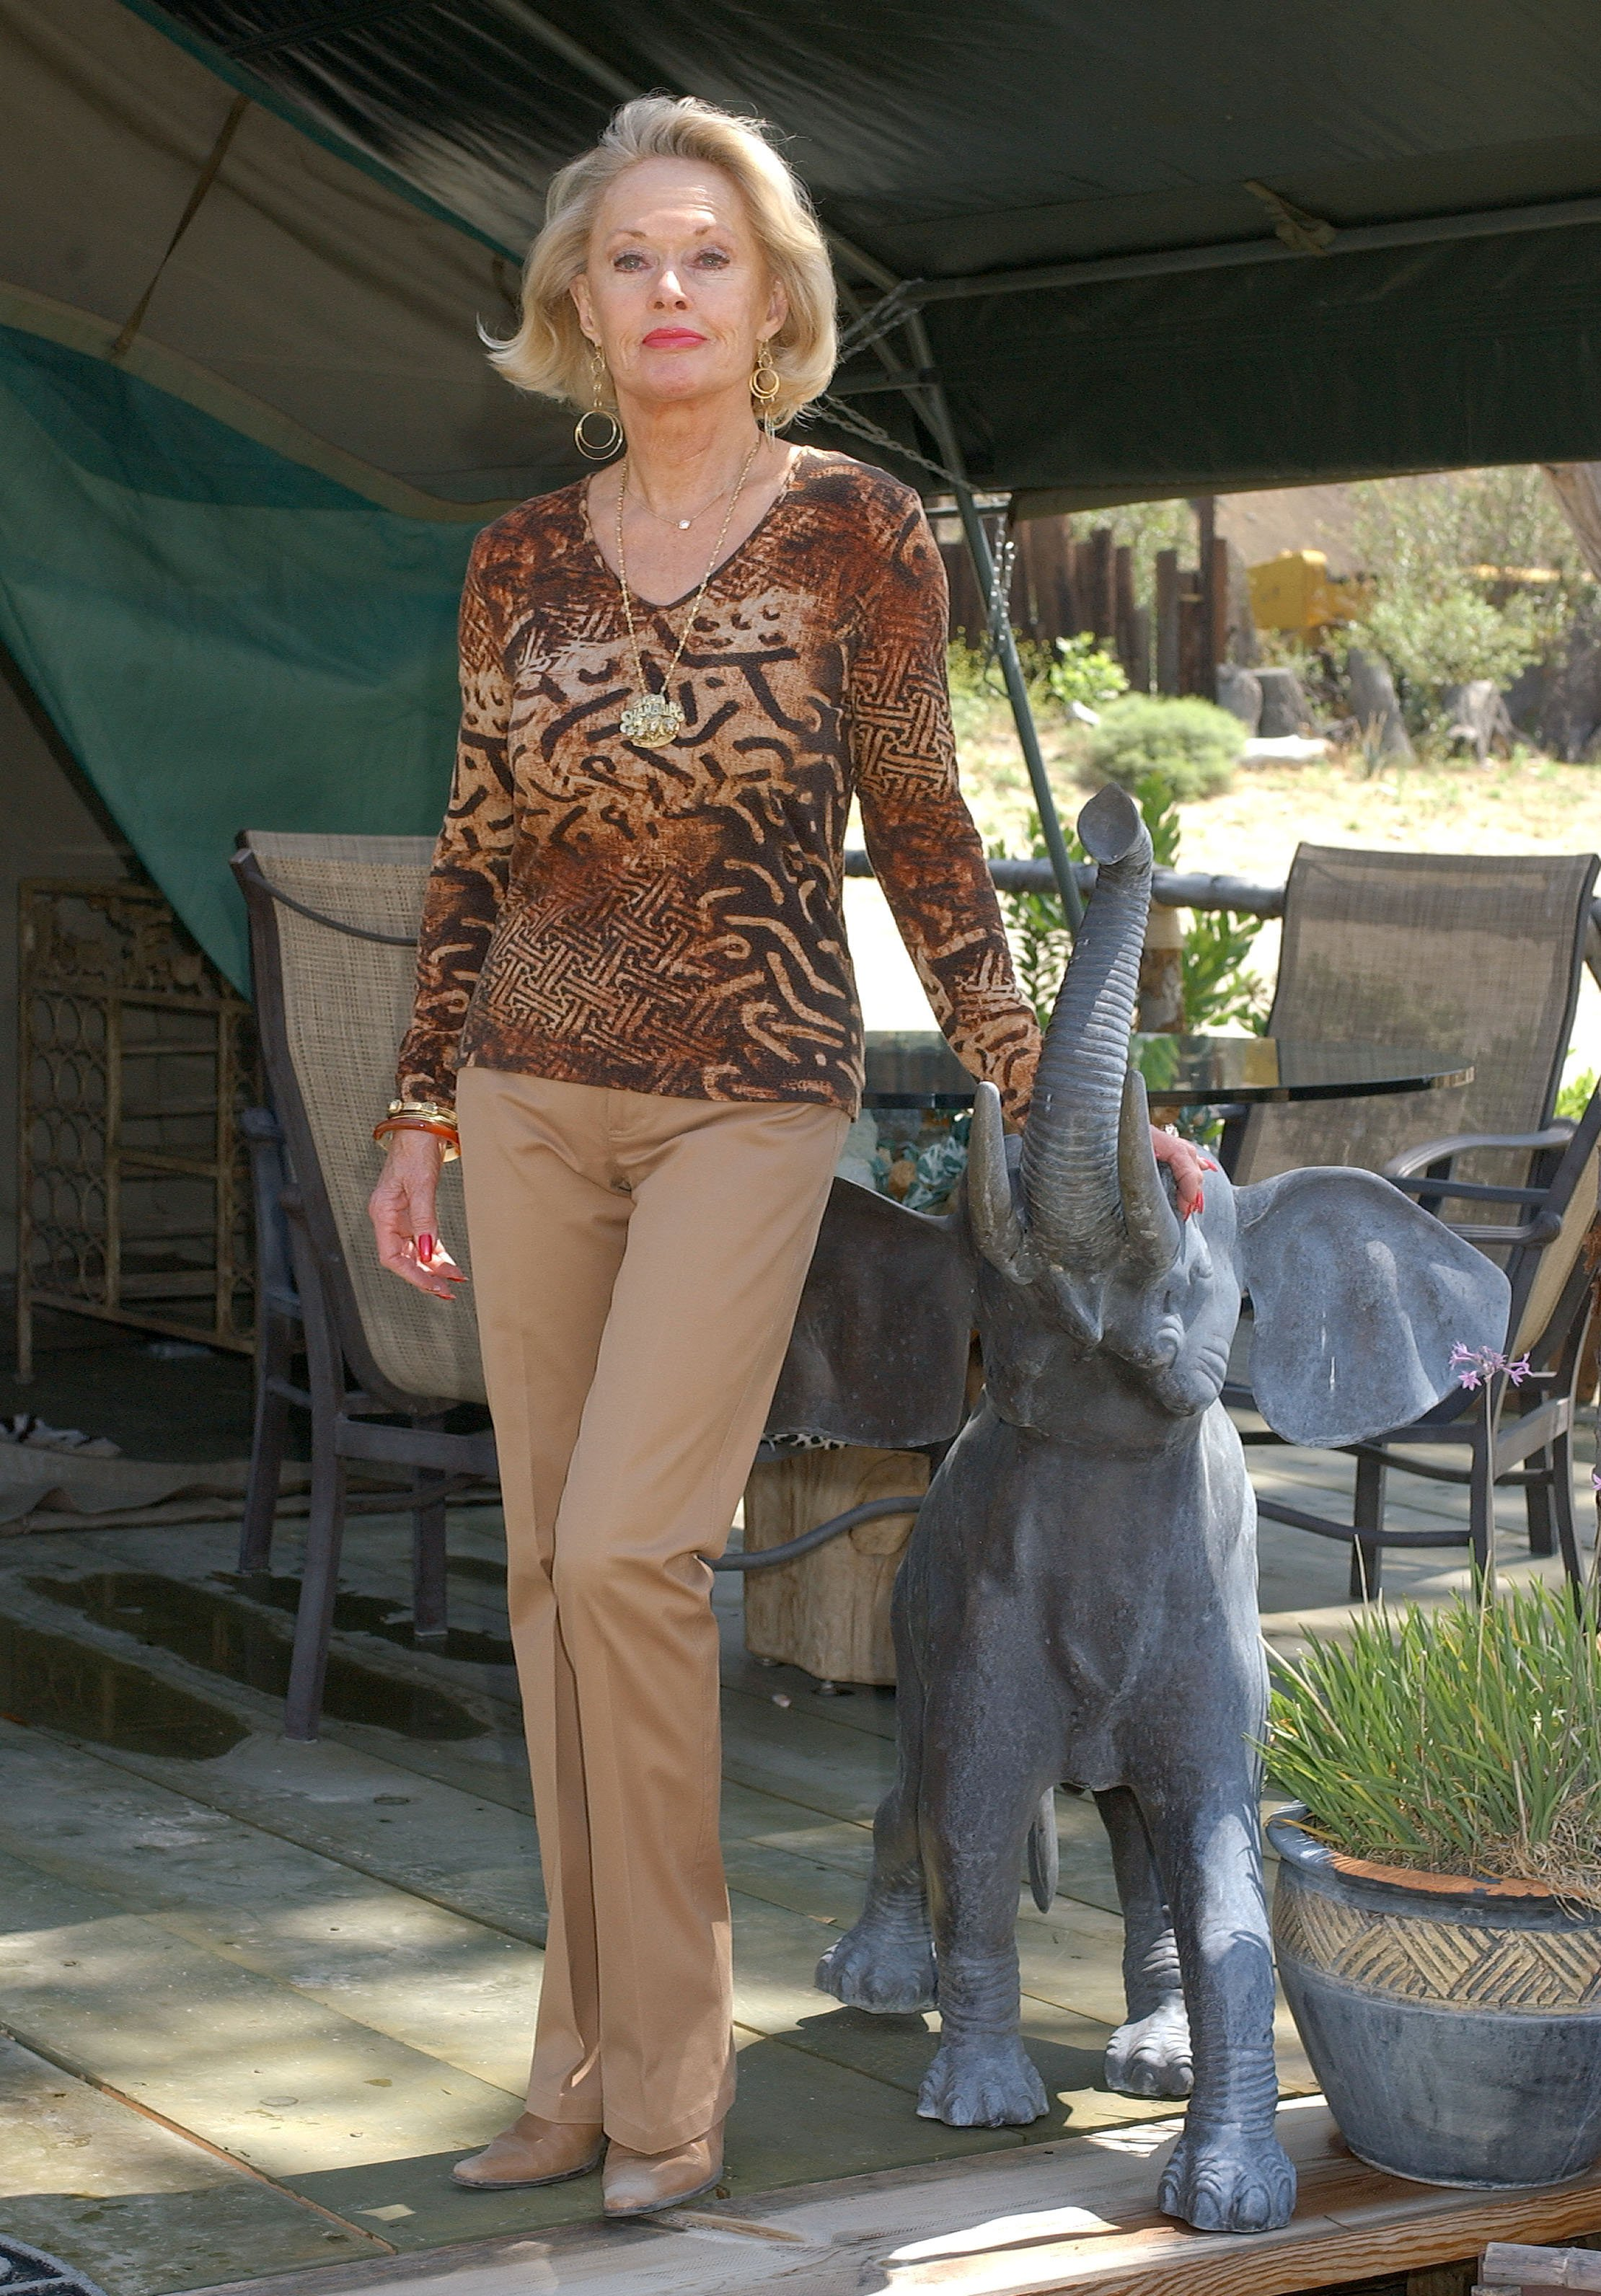 Tippi Hedren during ROAR for Wildlife Global Conference at The Shambala Preserve in Acton, California | Photo: Getty Images